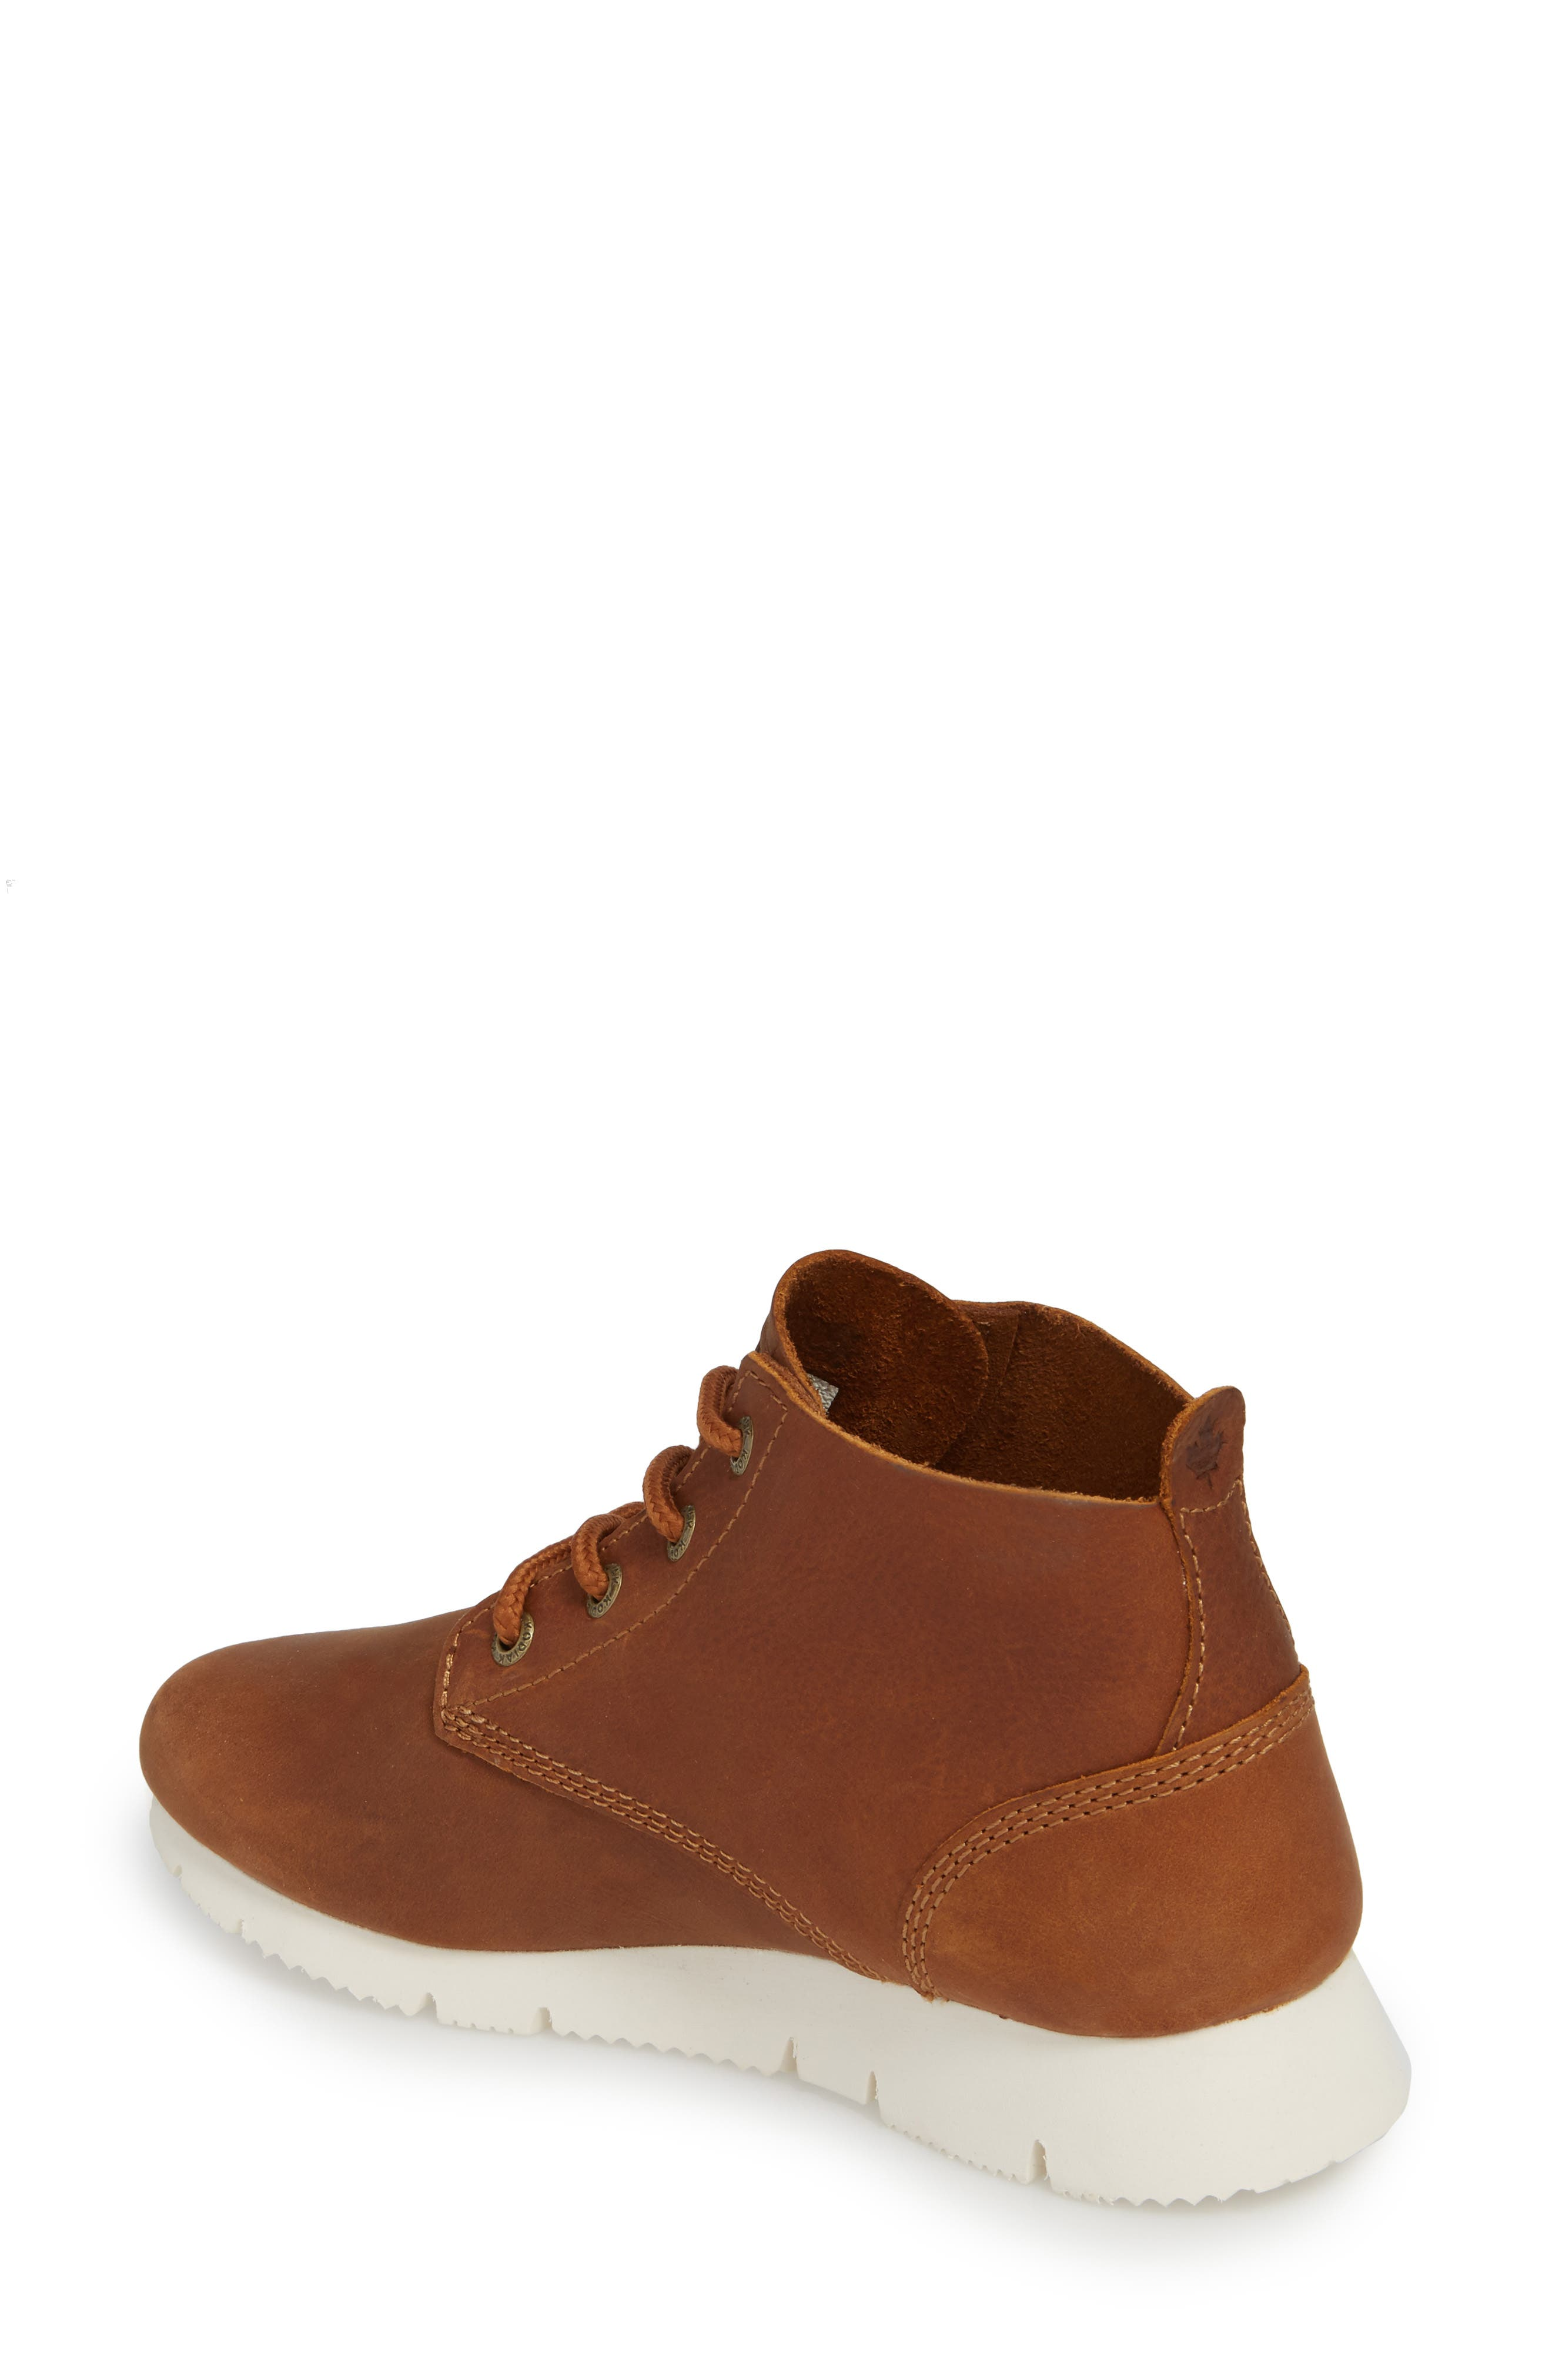 Chukka Boot,                             Alternate thumbnail 2, color,                             Peanut Leather